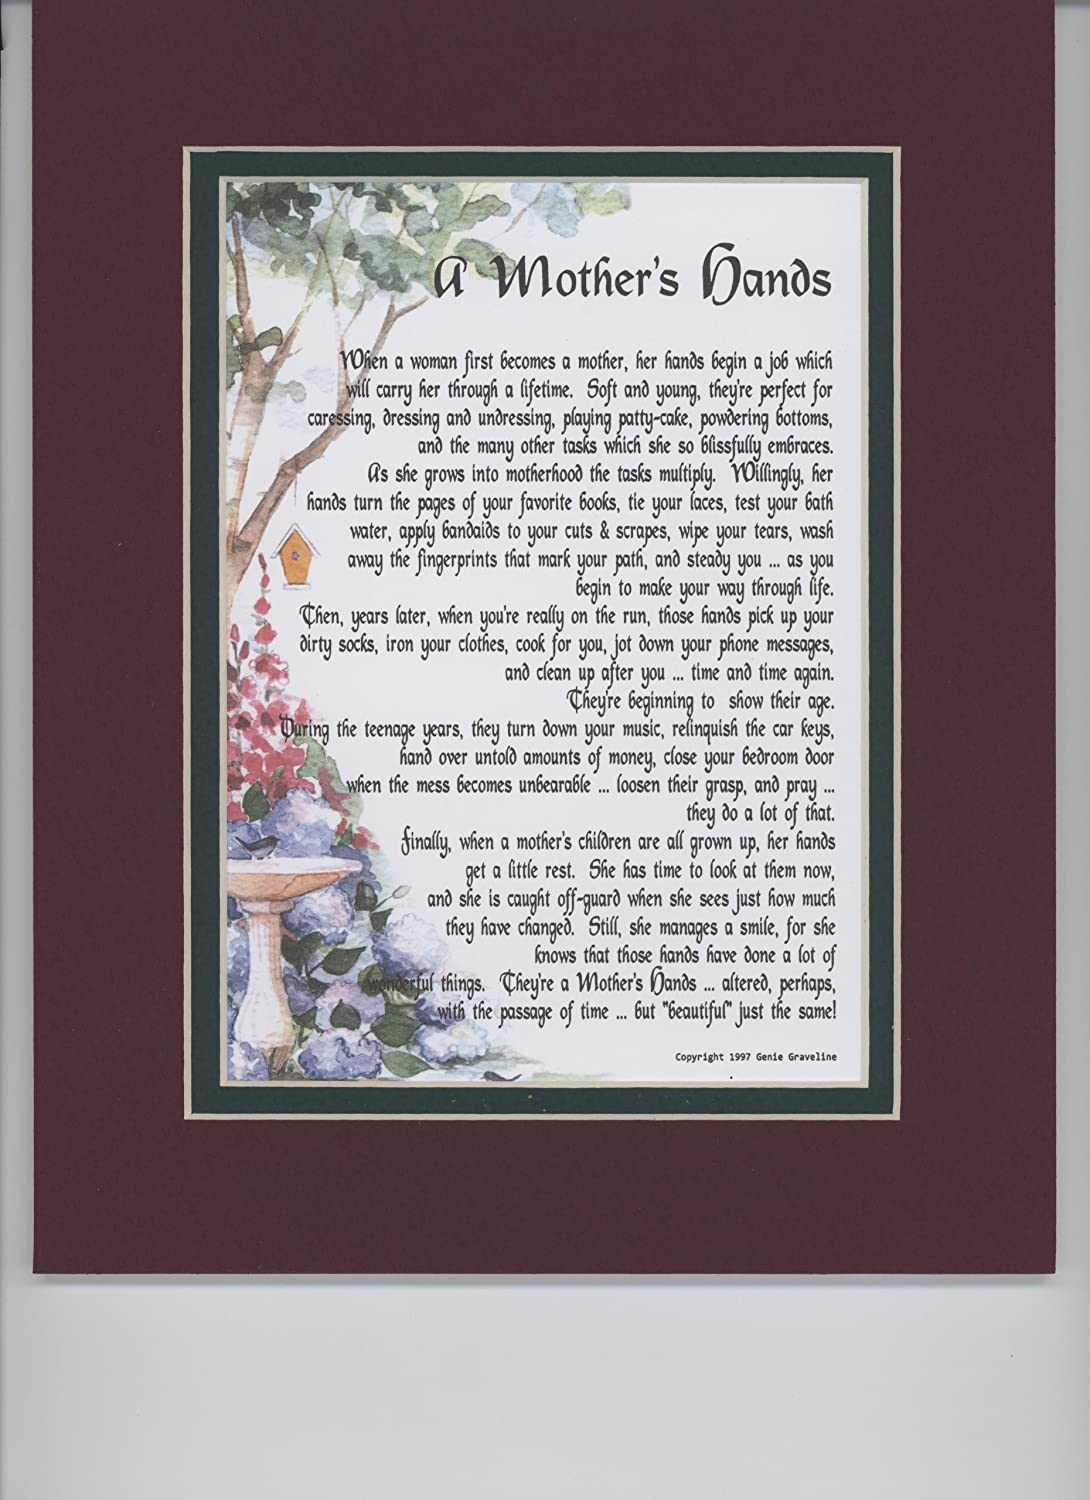 Ароматические свечи A Mother's Hands. A Gift For A Mom Or A Daughter. Touching 8x10 Verse, Double-matted in Burgundy Over Dark Green and Enhanced with Watercolor Graphics.